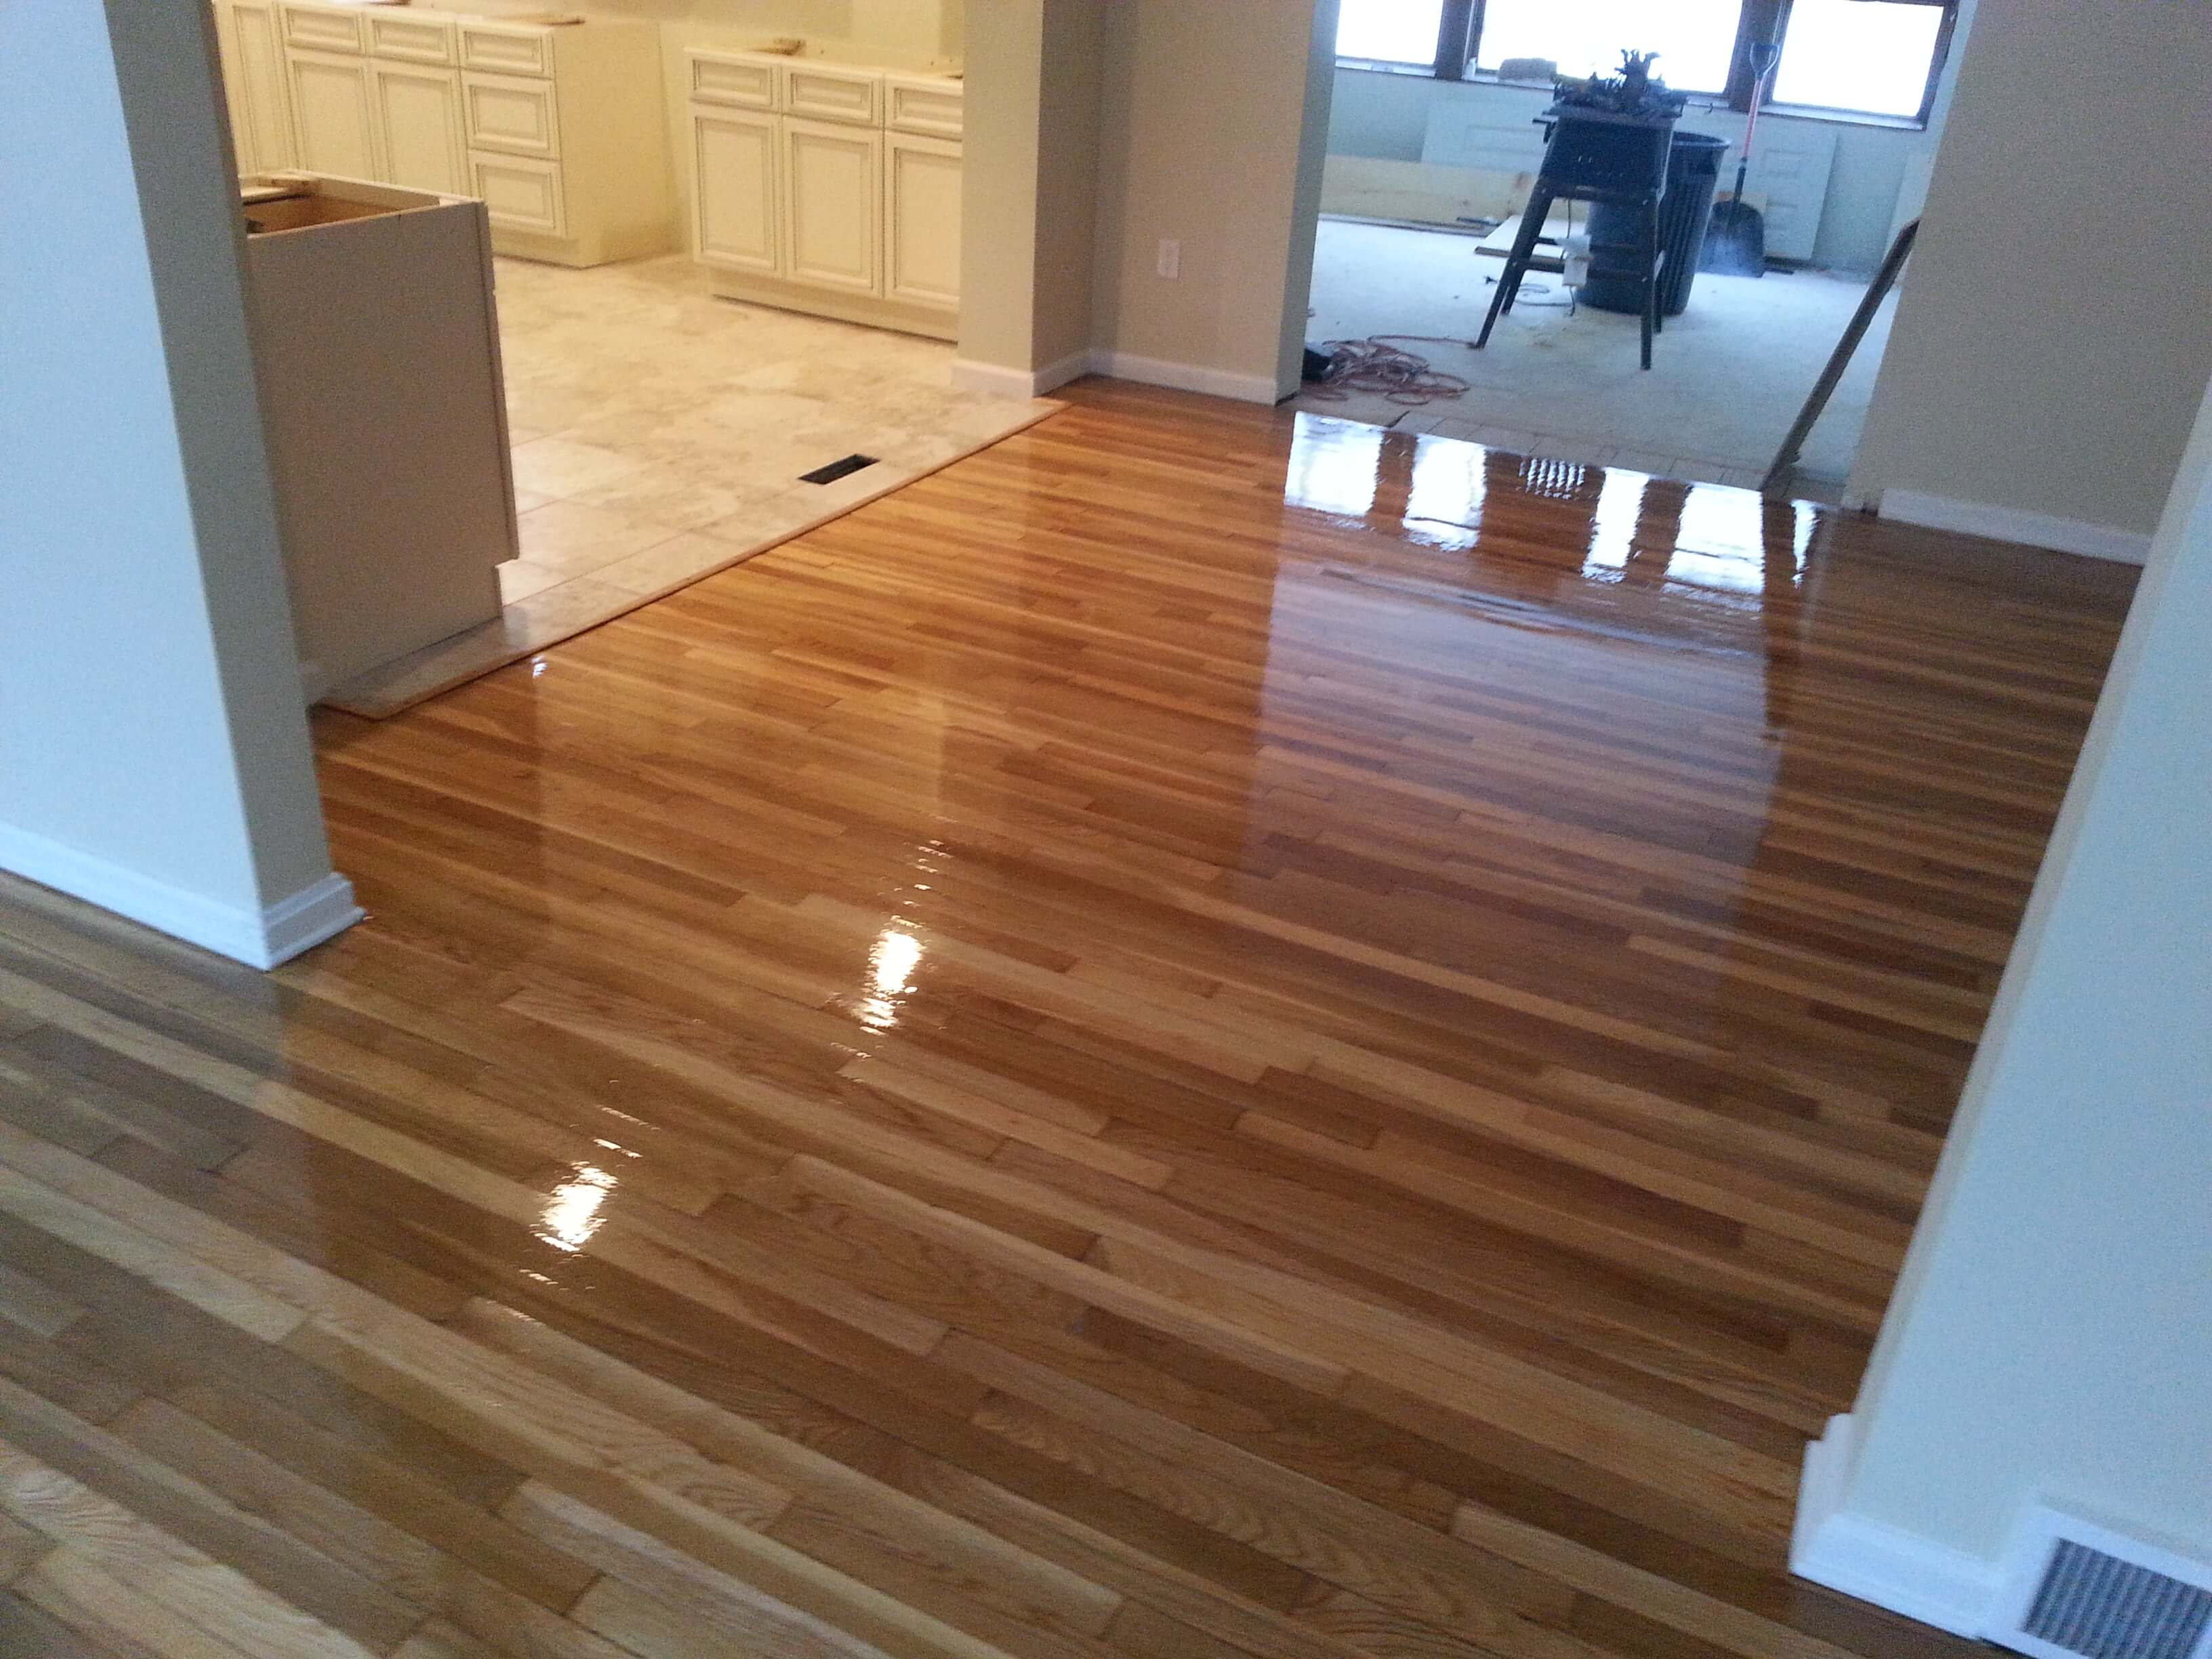 A resurfaced hardwood floor in the denver area